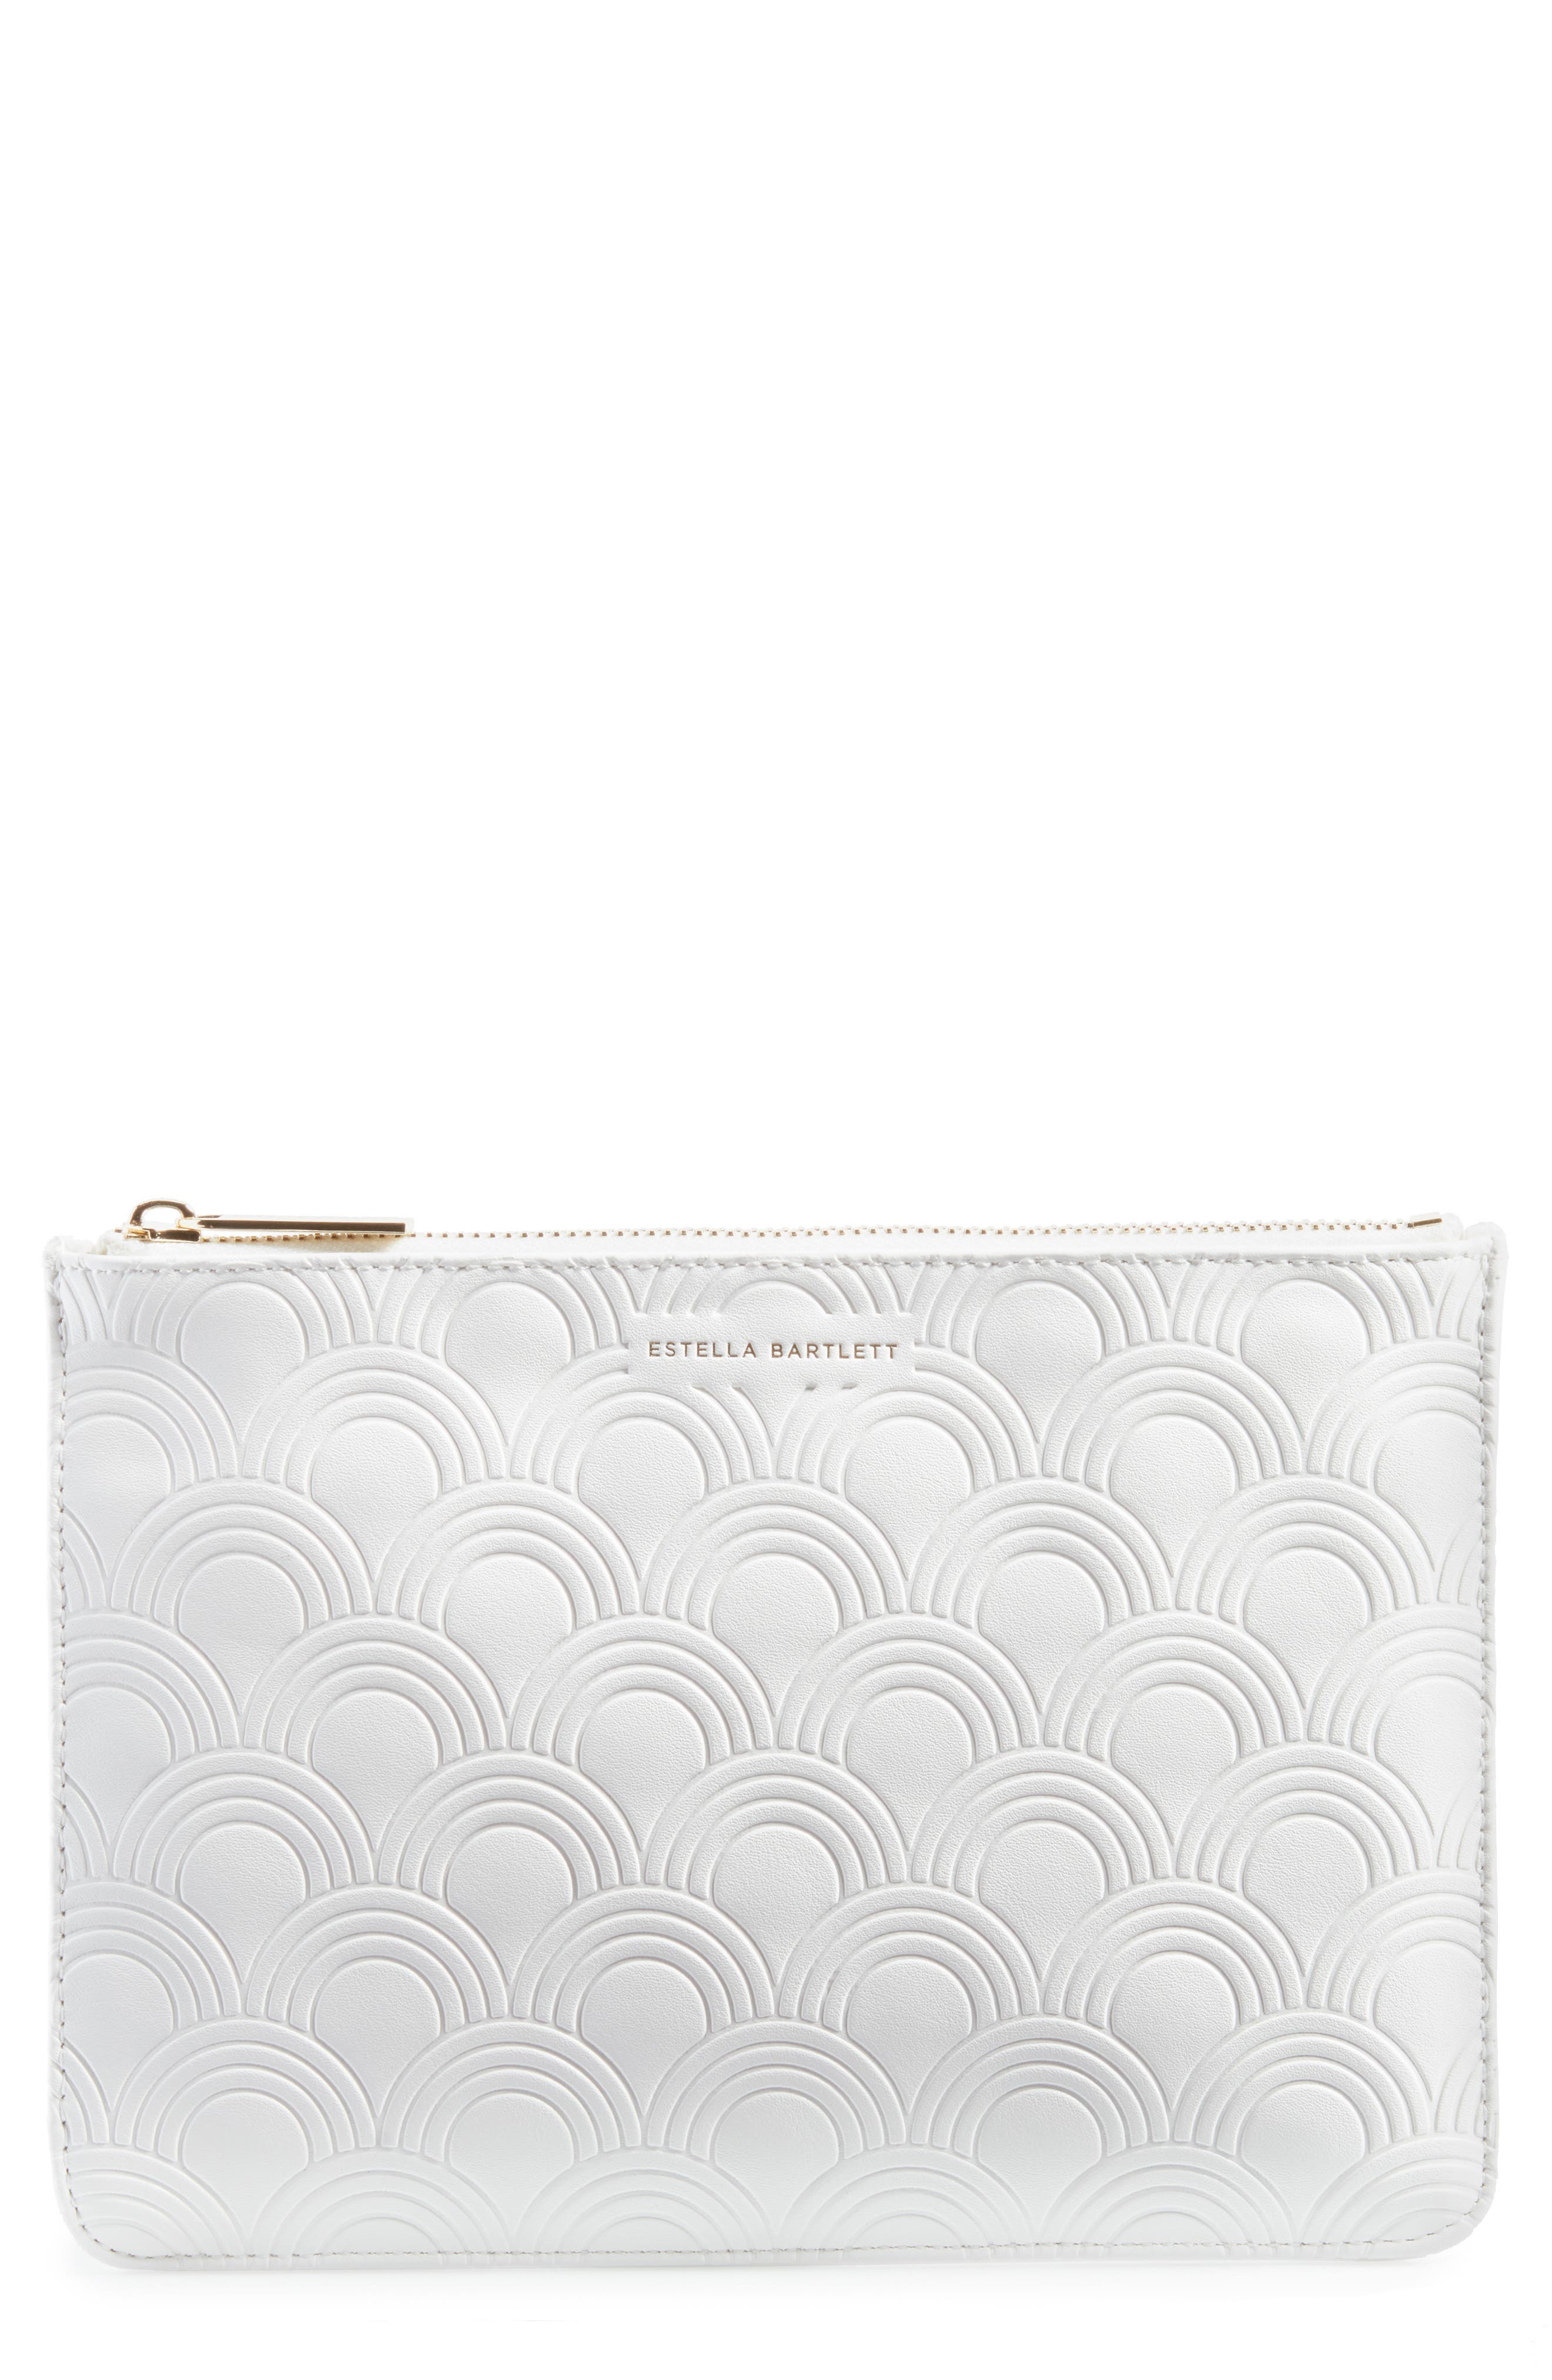 Medium Embossed Faux Leather Pouch,                         Main,                         color, Ivory